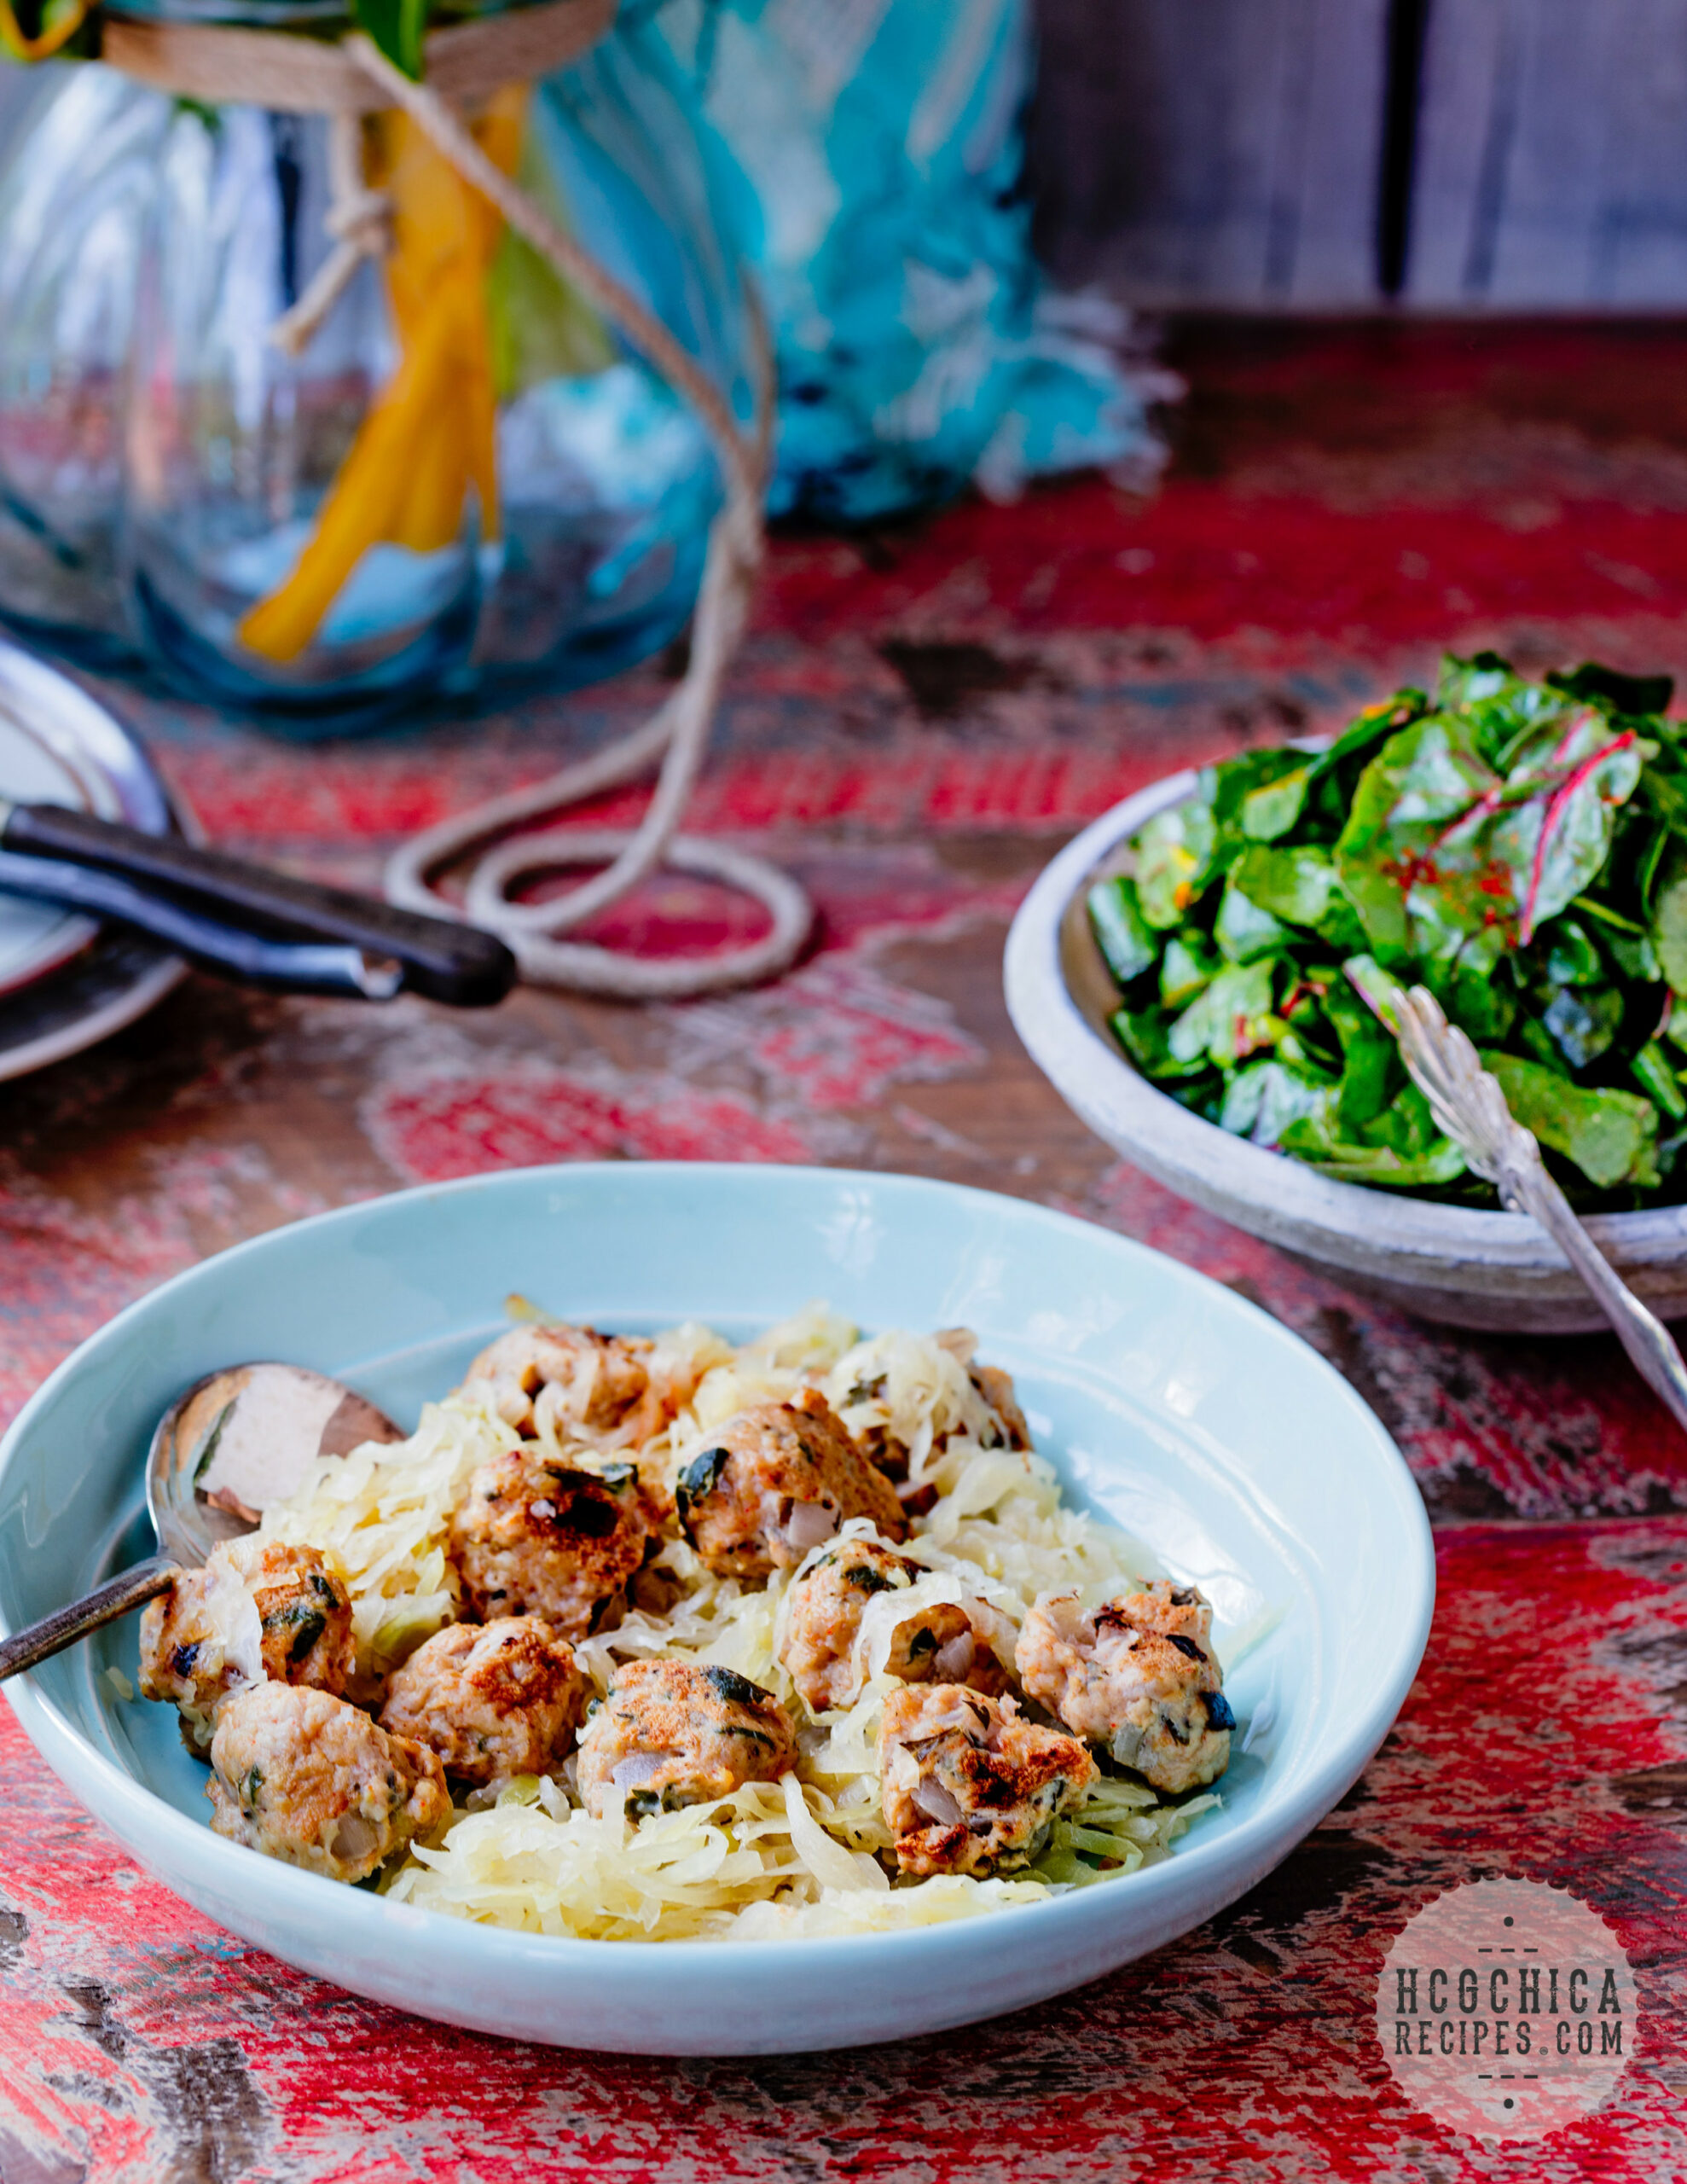 hCG Diet Recipe | Chicken Sauerkraut Meatballs with Wilted Chard - SP/AP - diet recipes chicken